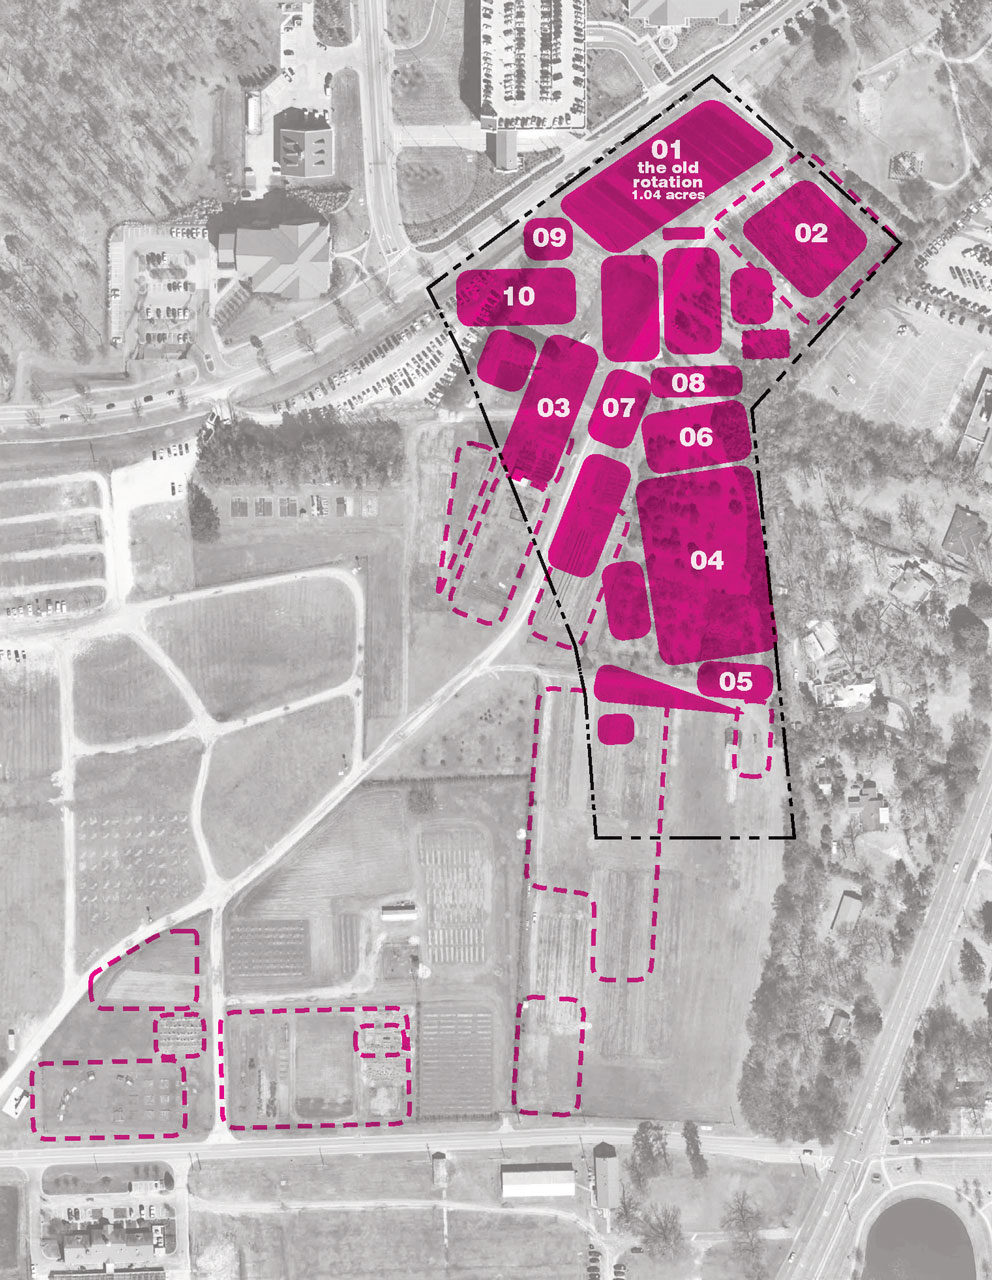 PLOT CHOREOGRAPHY: Disparate plots from across campus are woven together with new plots to establish Field Lab No. 01, an area dedicated to hands-on collaboration and greater visibility of active fieldwork at Auburn.